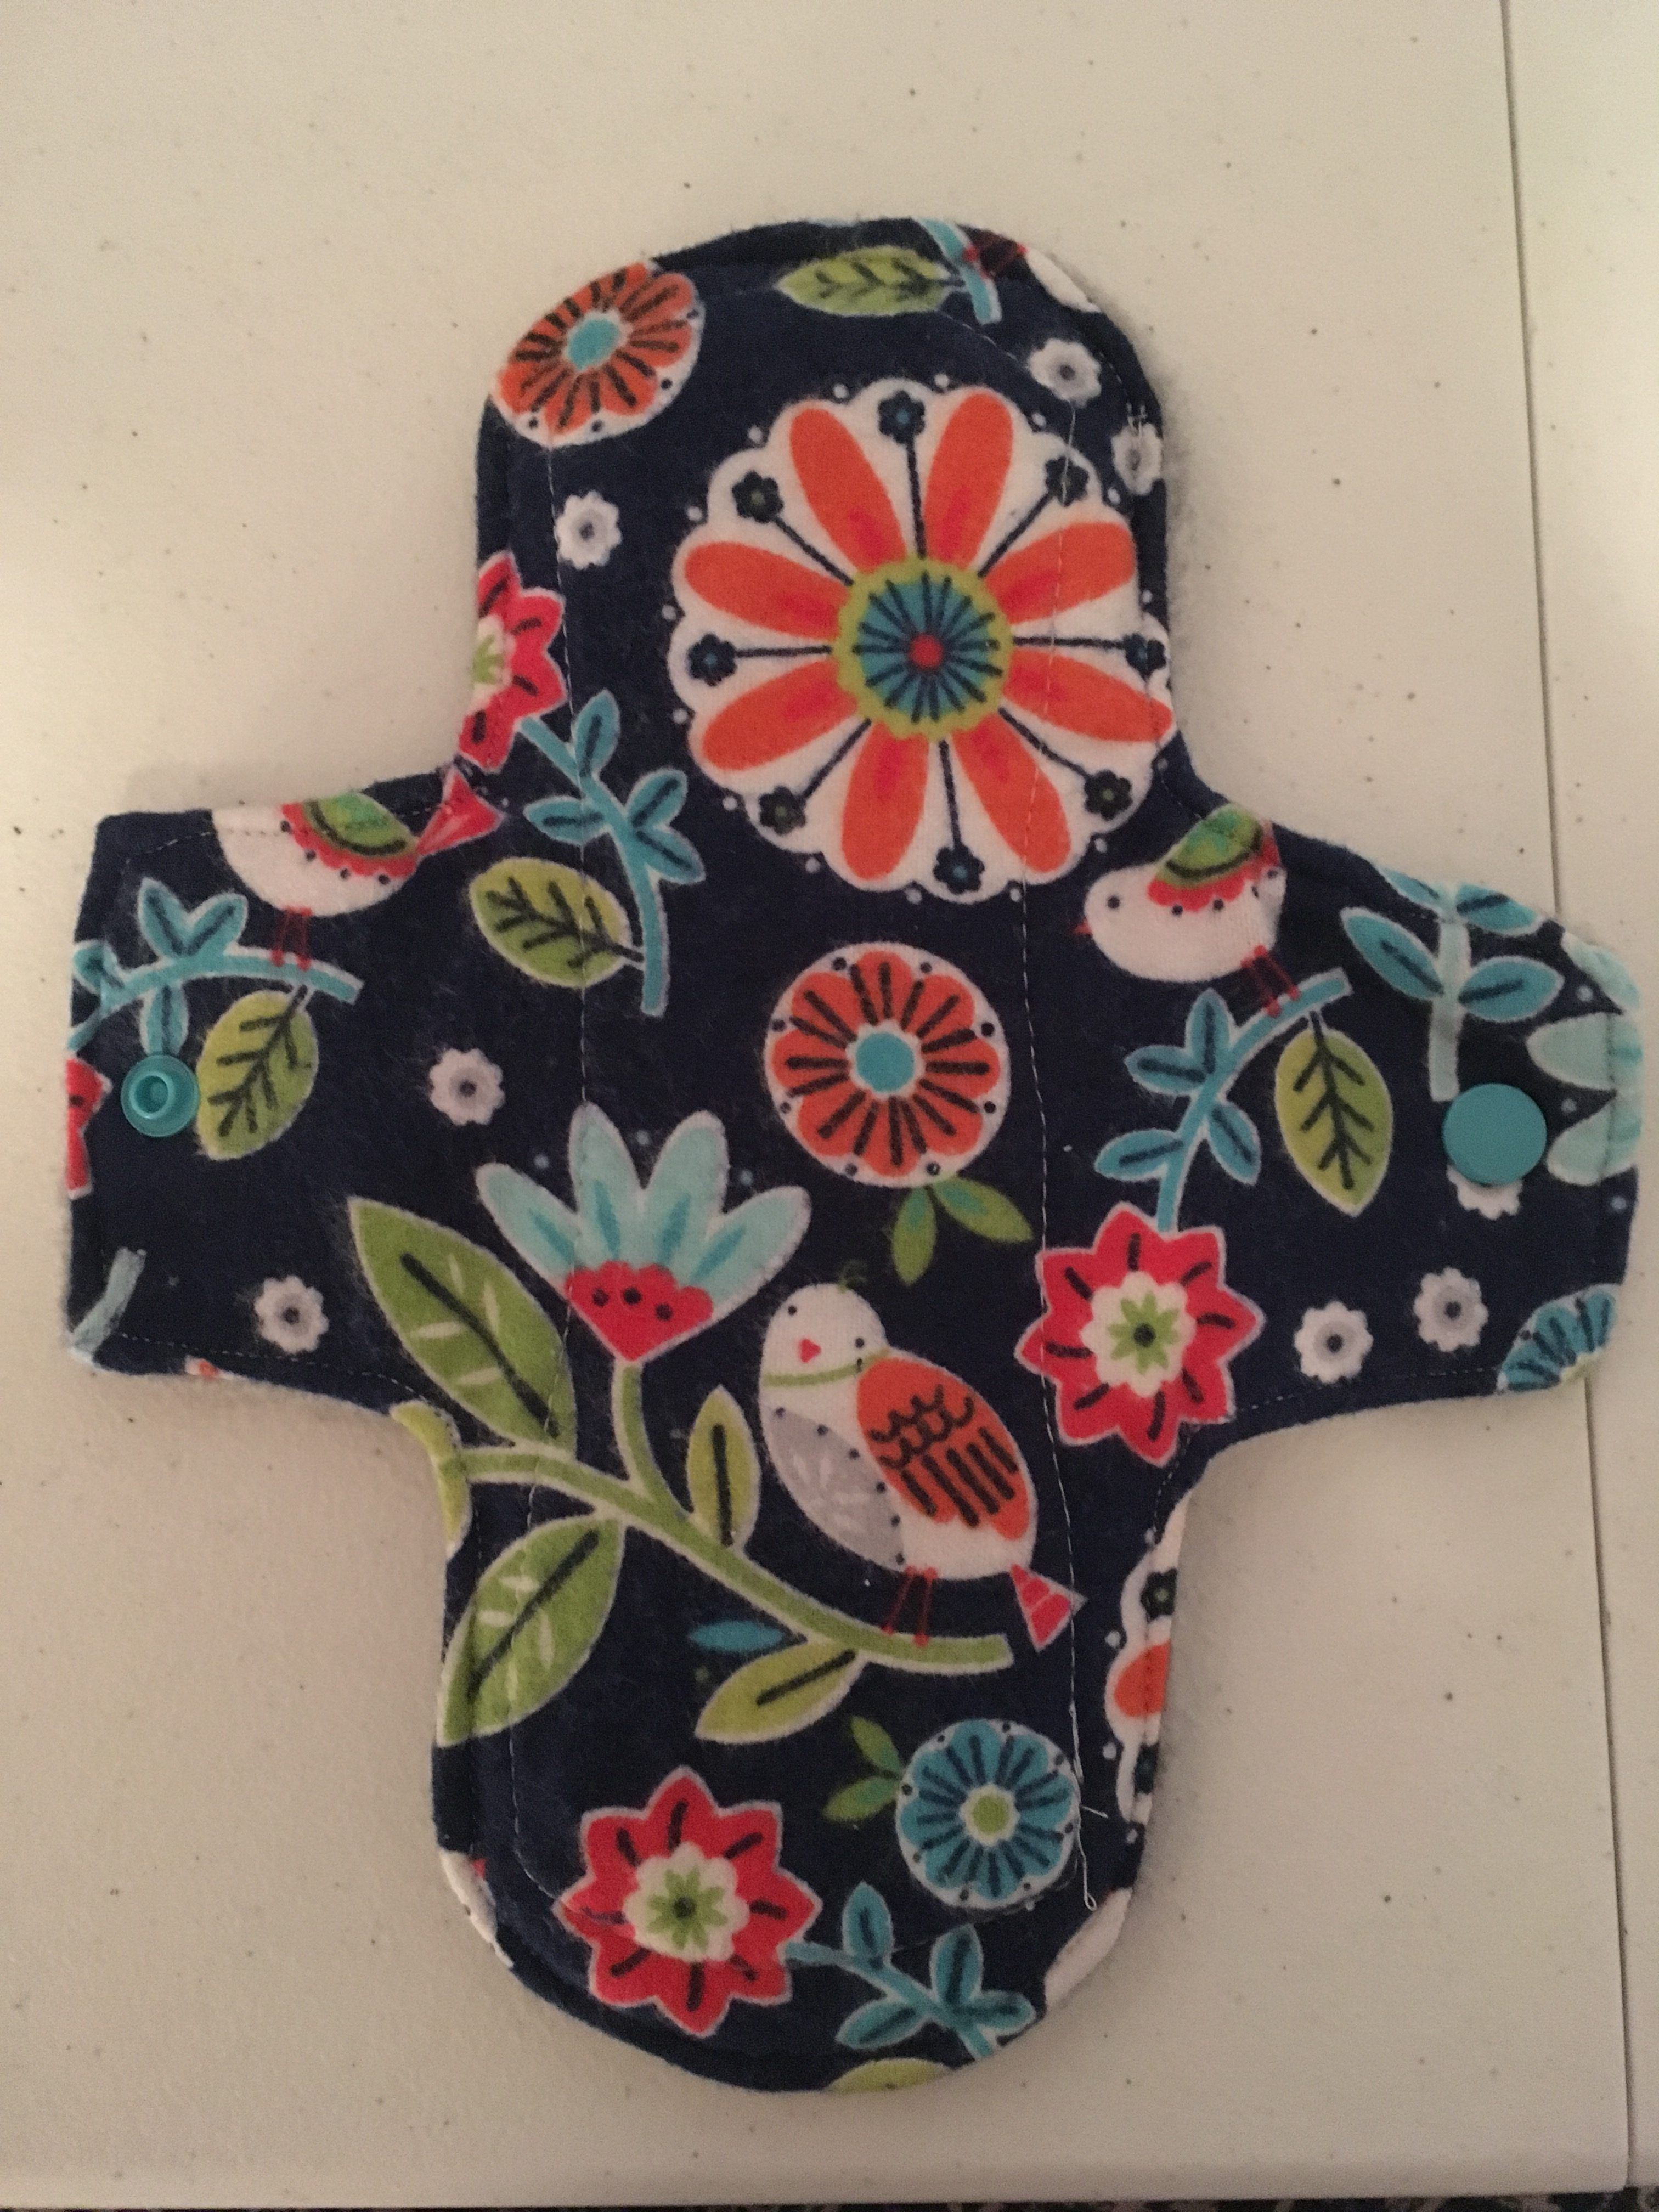 How to Make Reusable Cloth Pads for Operation Christmas Child 10-14 Year Old Girl Shoeboxes ...